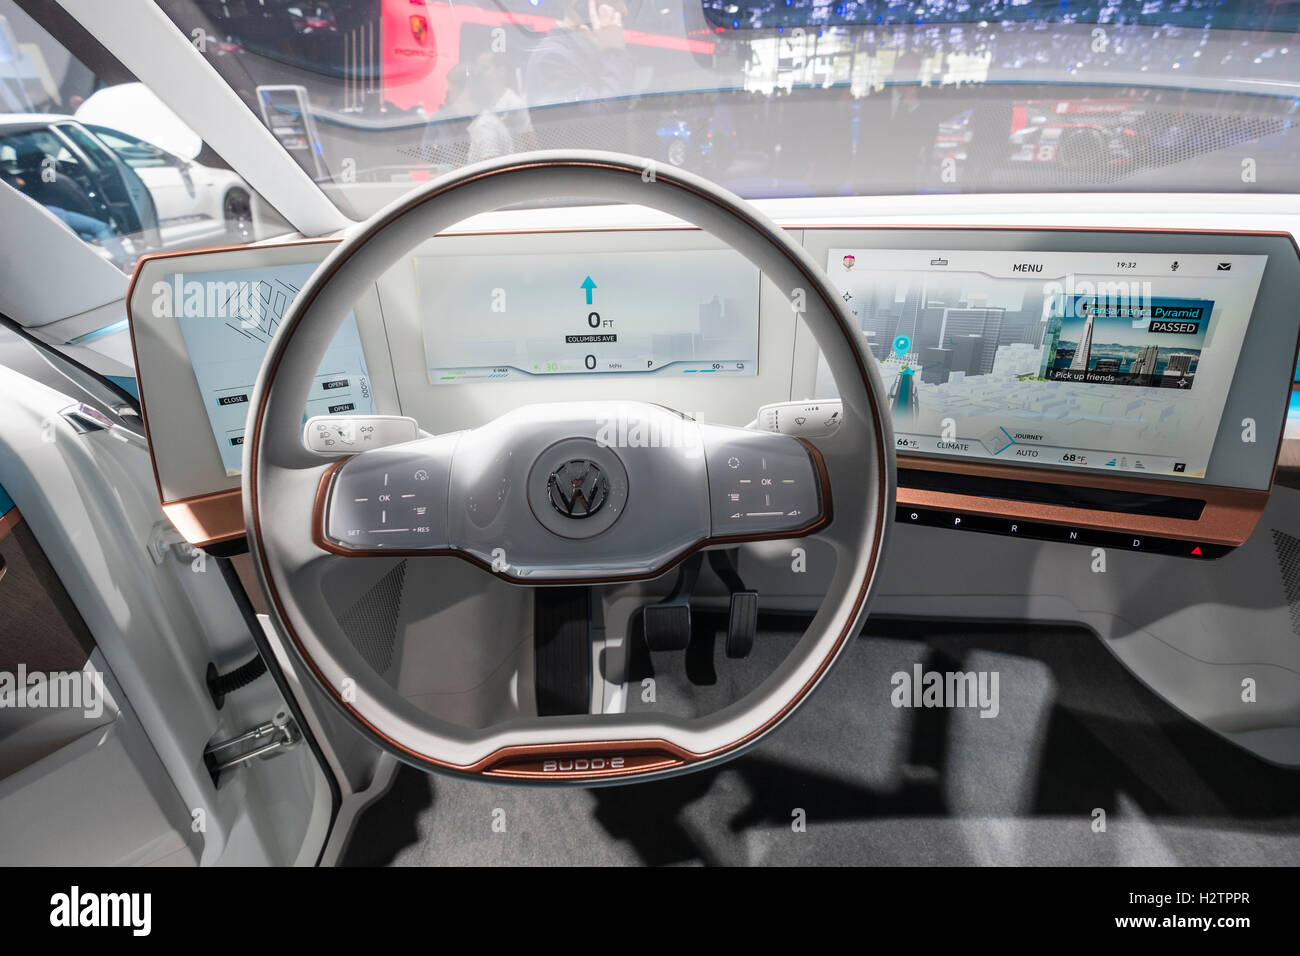 Vw Dashboard Stock Photos & Vw Dashboard Stock Images - Alamy